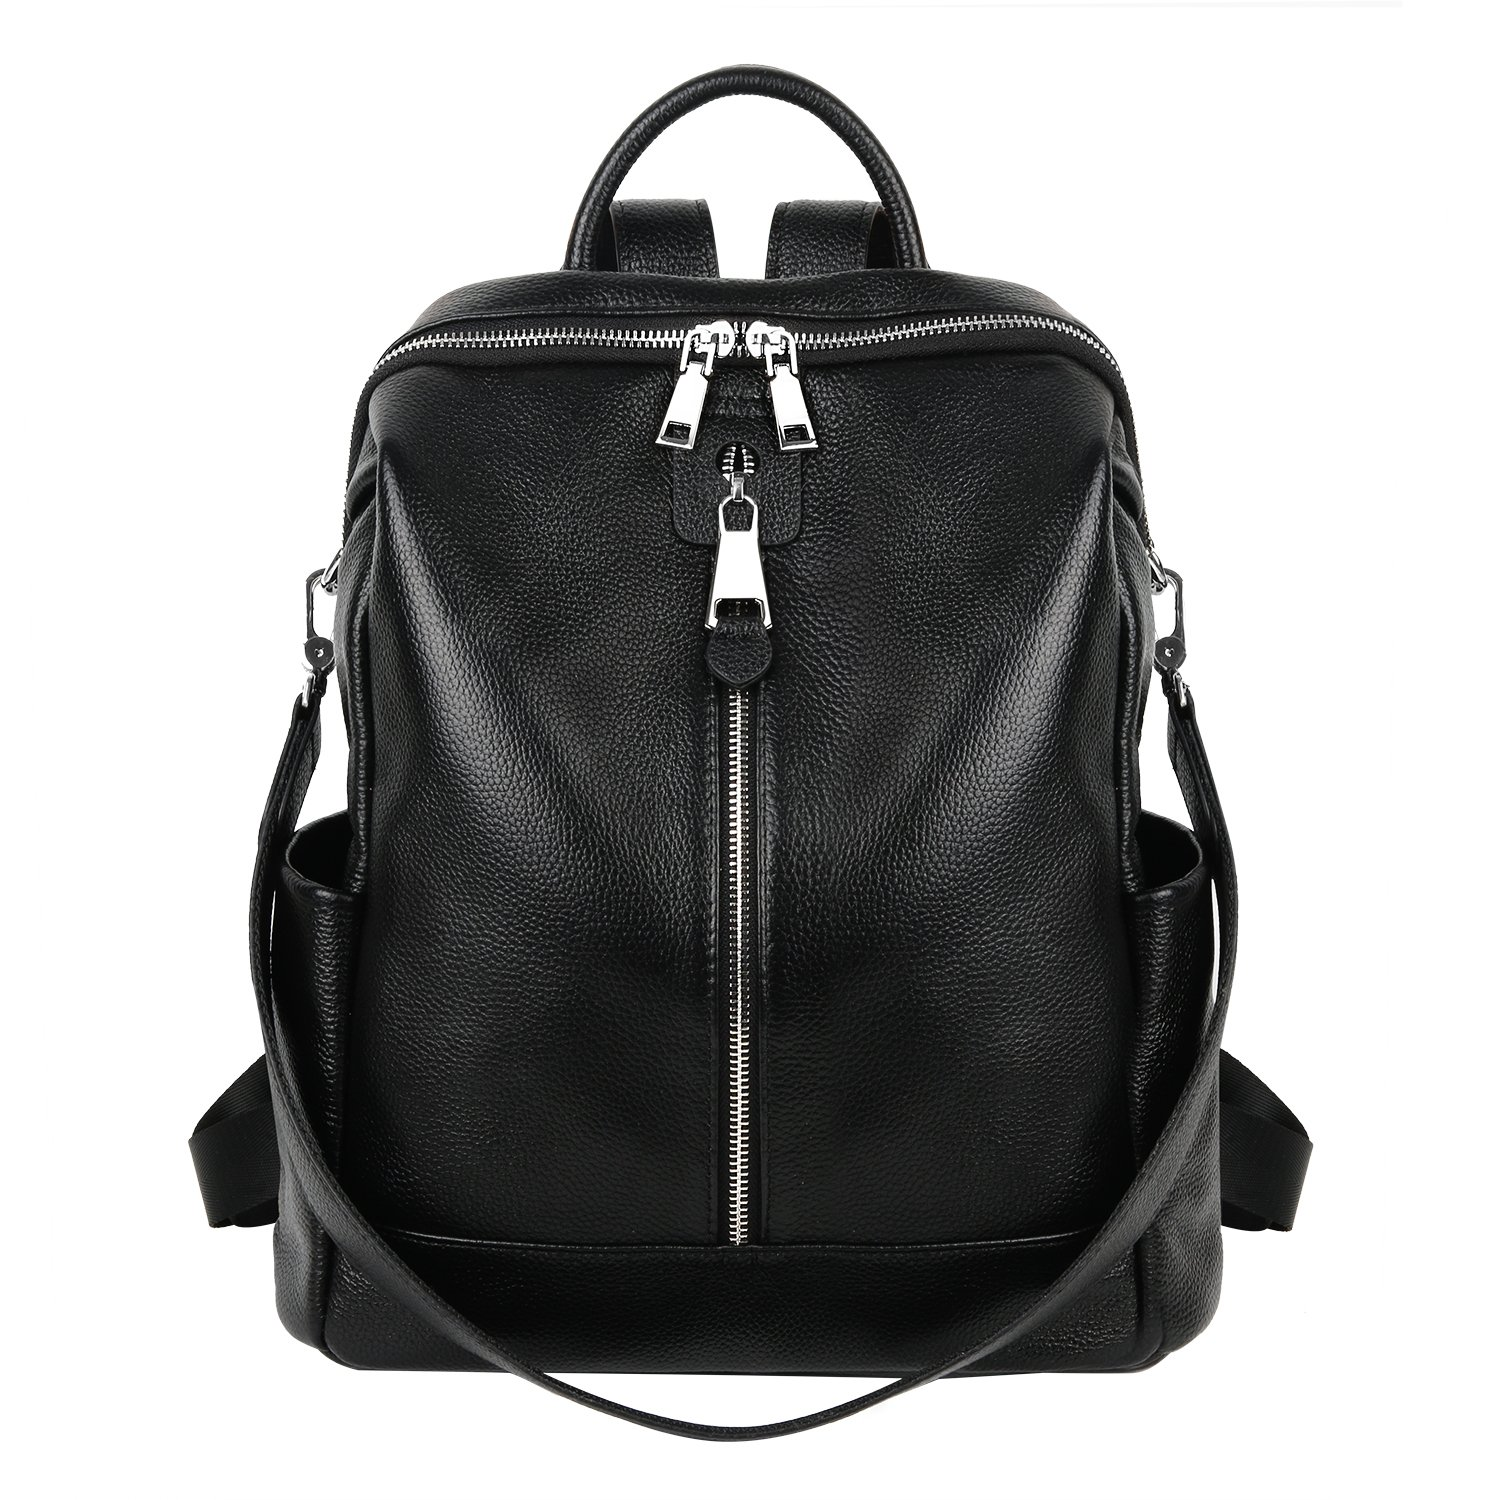 Backpacks for Women Large Capacity Leather Womens Backpack School Bag two ways carry Shoulder Bags